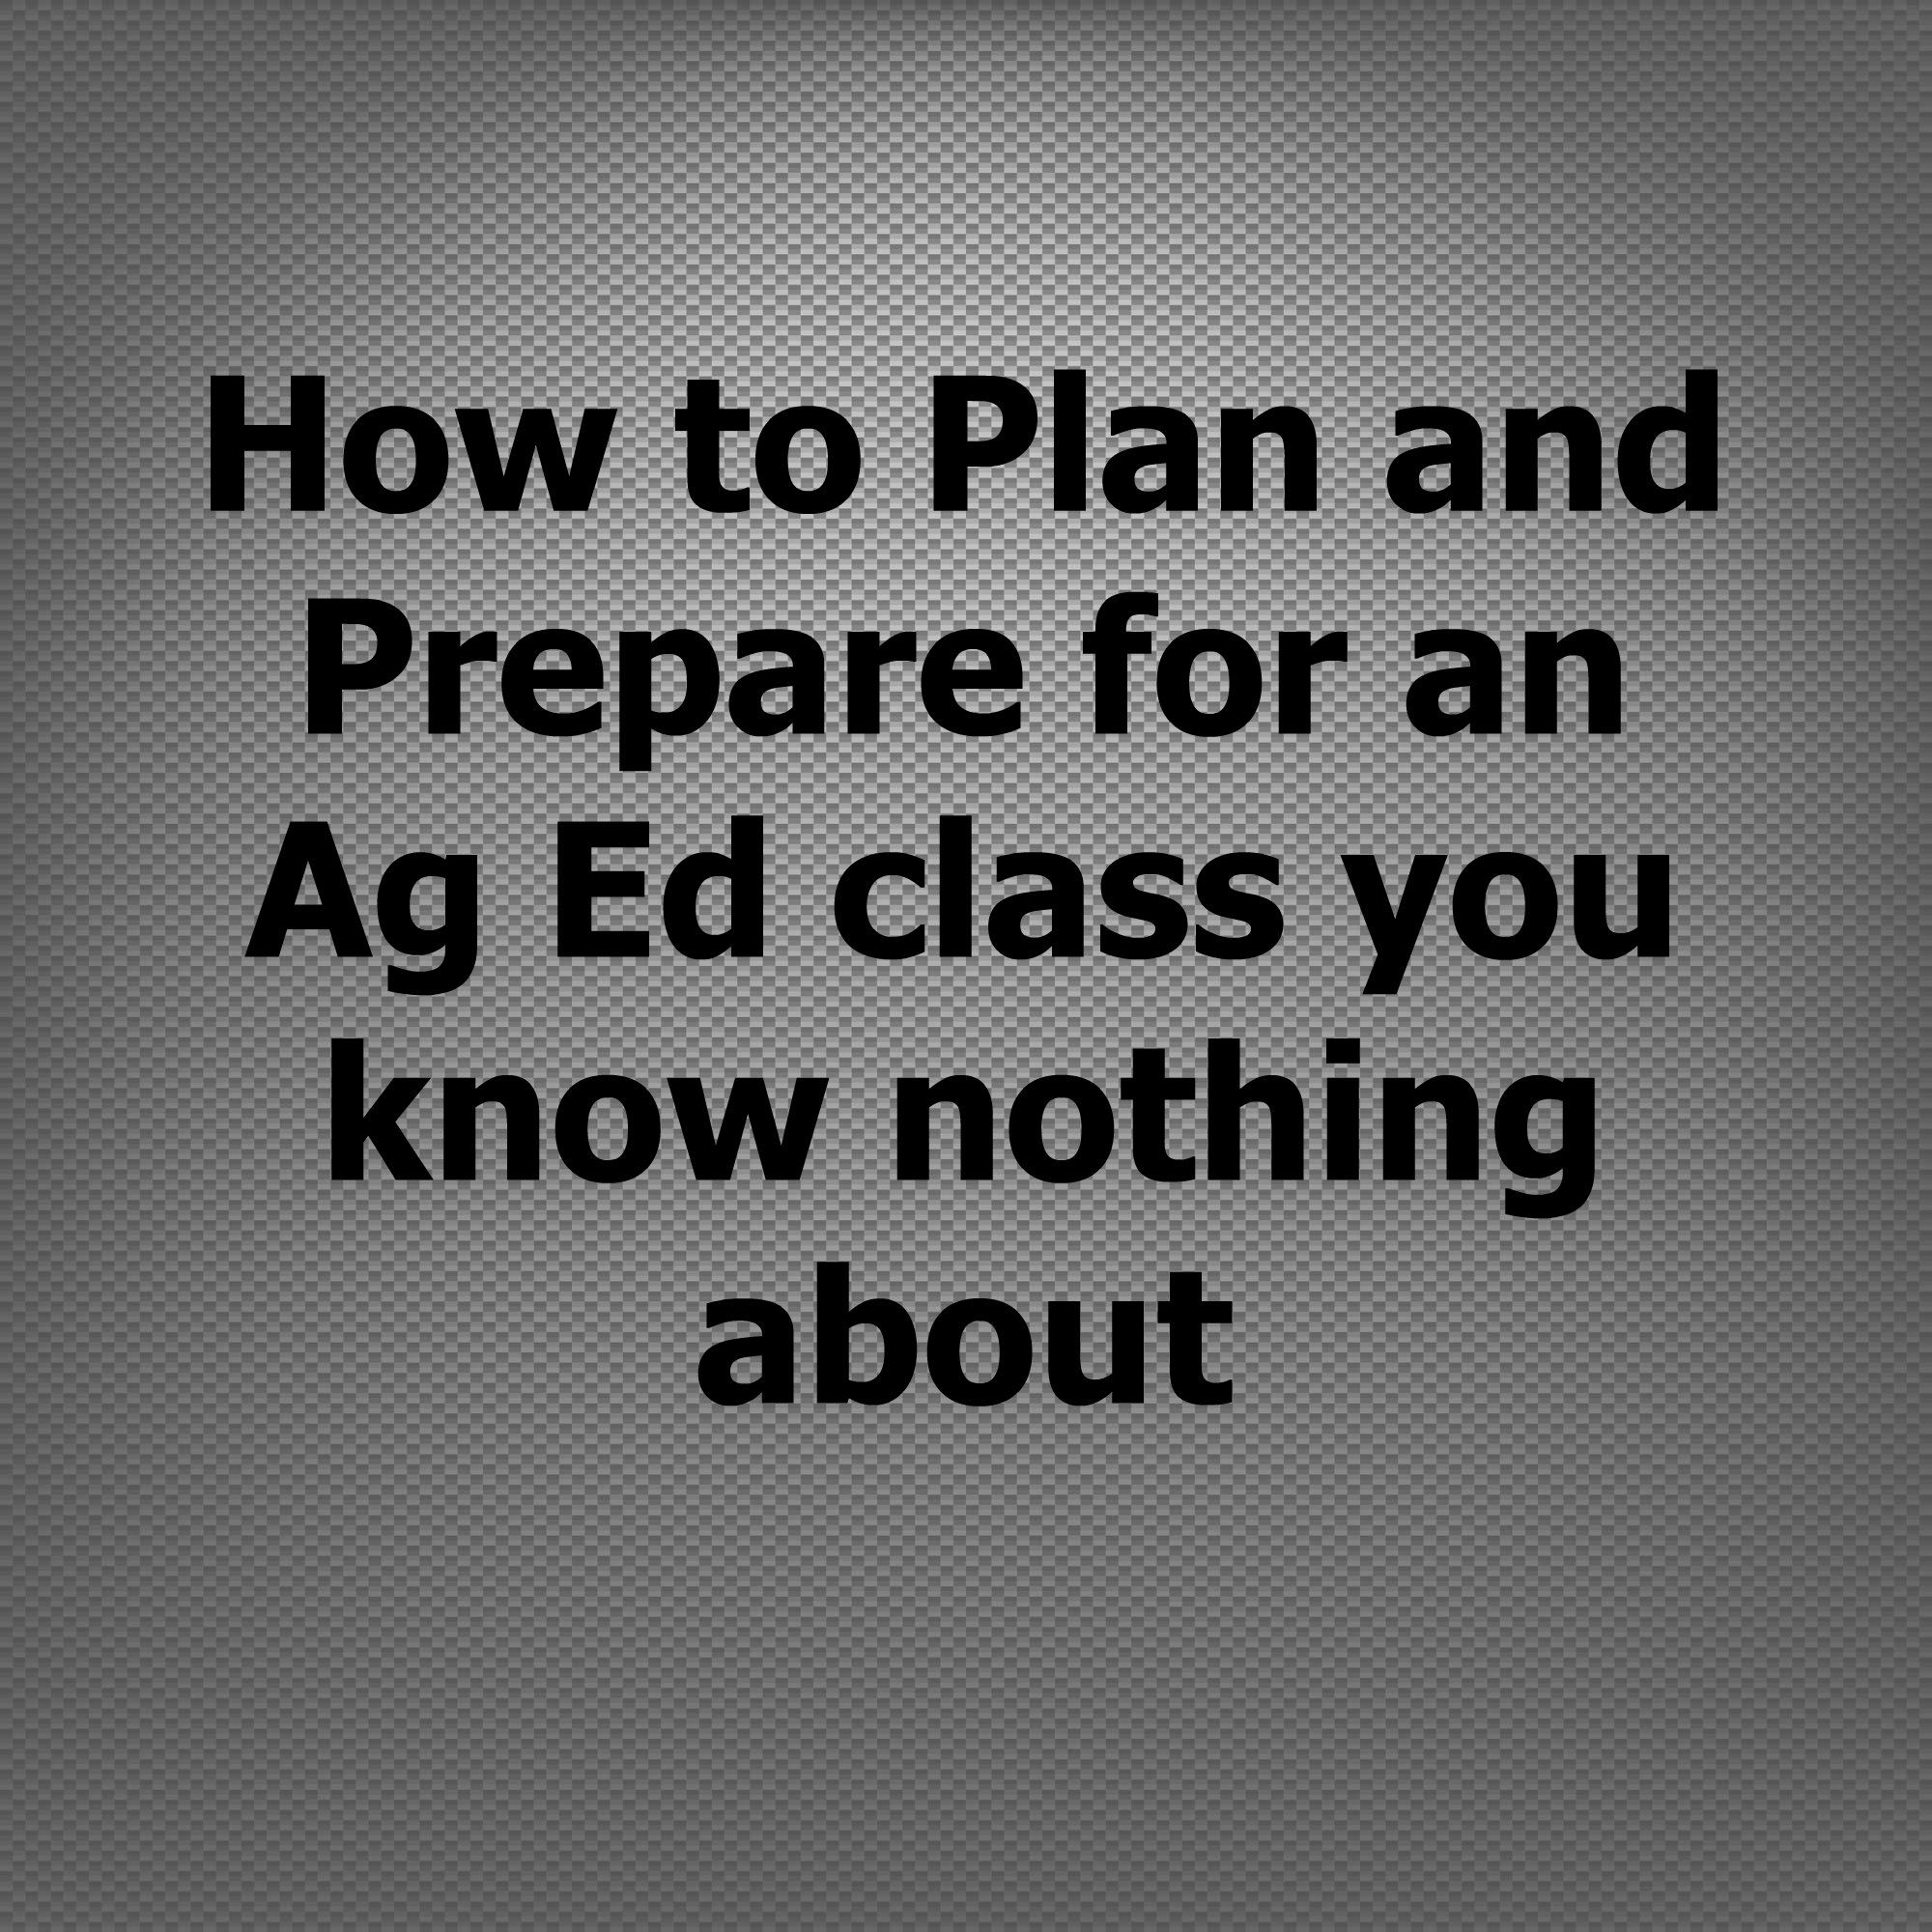 how to plan and prepare for a new ag ed course you know nothing this article reviews an easy way to organize your thoughts and prepare for a class agriculture